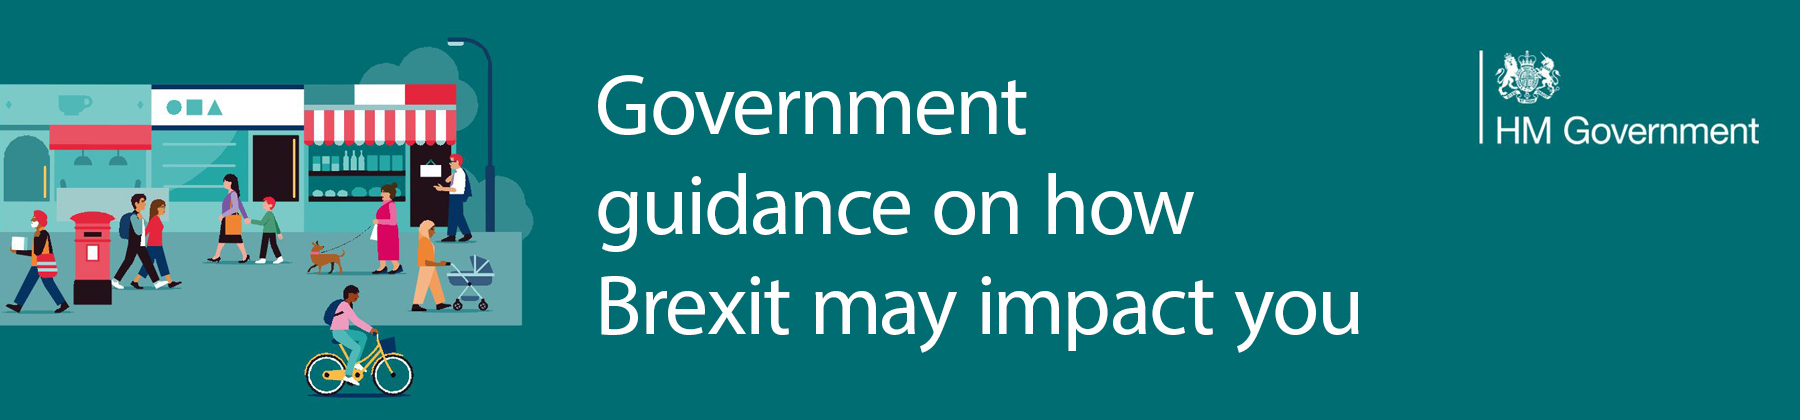 Link to Government website for guidance on Brexit.